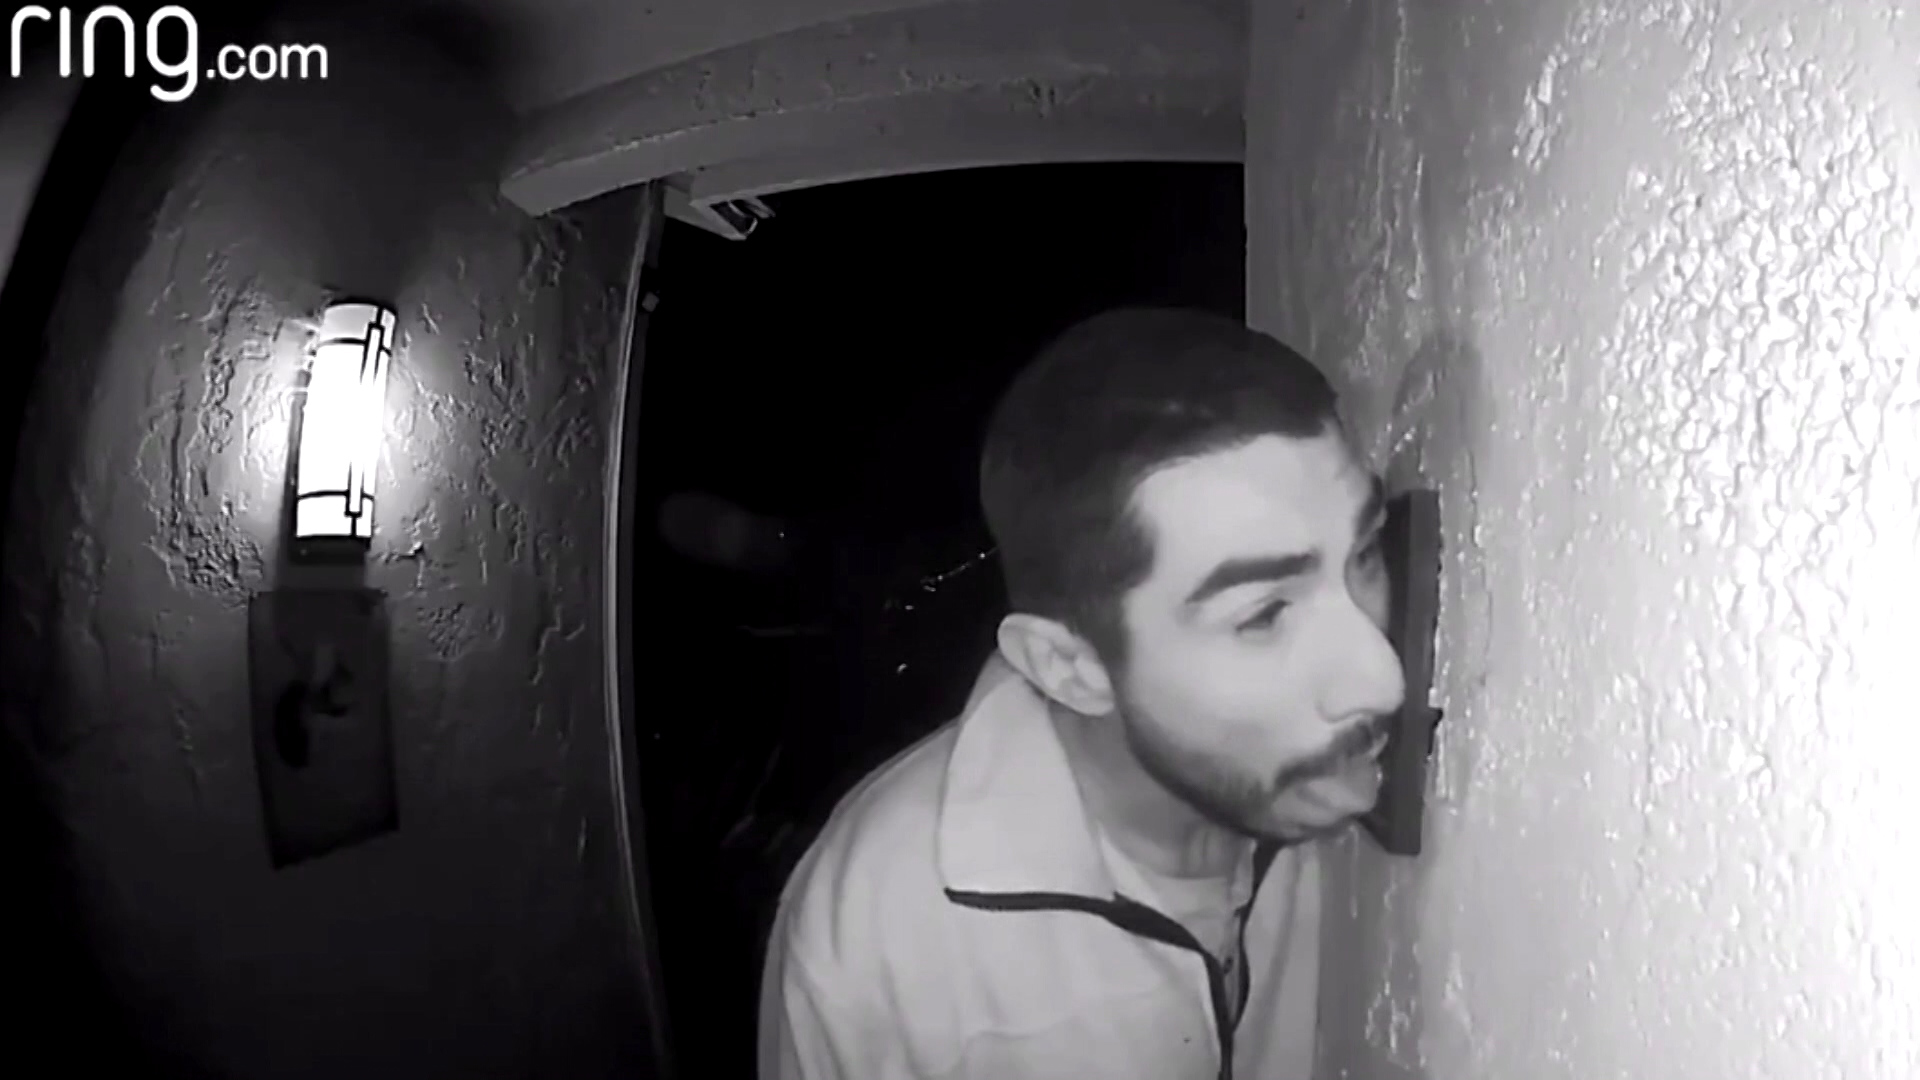 Police Hunt For Man Caught On Camera Vigorously Licking Familys Three Doorbells The Hearing Impaired Doorbell 3 Hours Watch News Videos Online